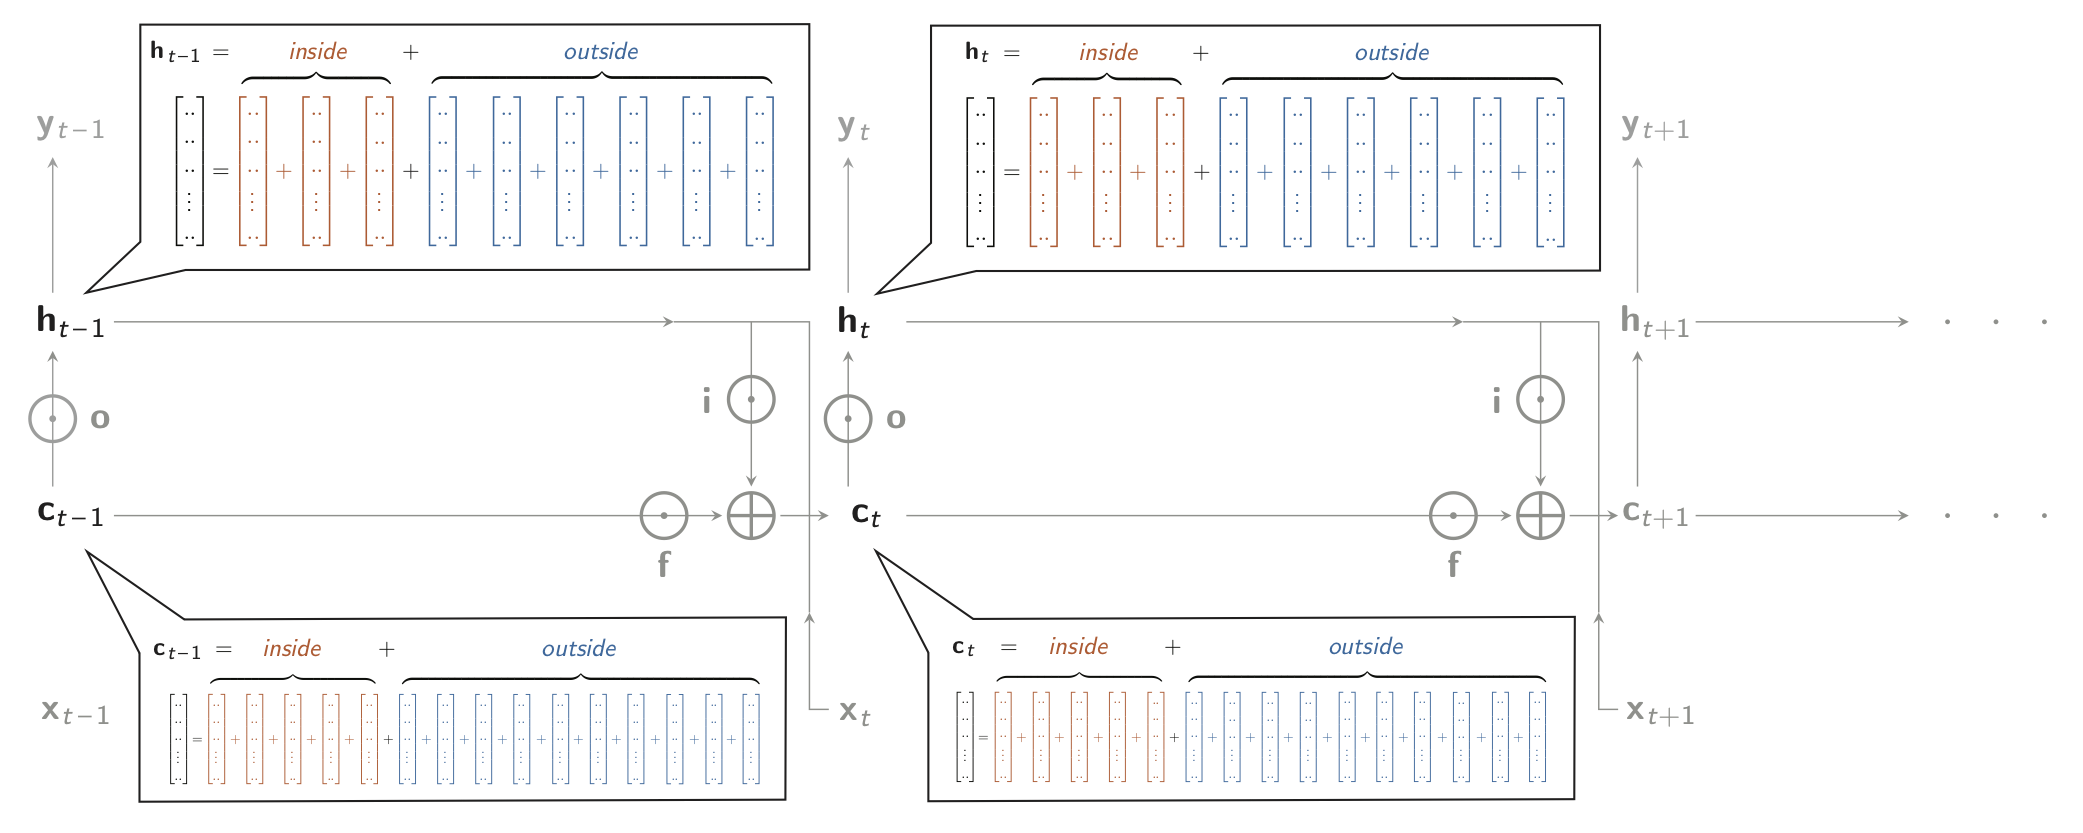 **Figure 1.** Diagram of an LSTM (unfolded in time), that takes inputs x and produces output y, both changing over time. Shown are the partitionings of the 'memory cell' **c** and the hidden layer **h** as sums of 15 and 9 terms each, as used in the _Contextual Decomposition_ technique (Murdoch et al., 2018; Jumelet et al., 2019).